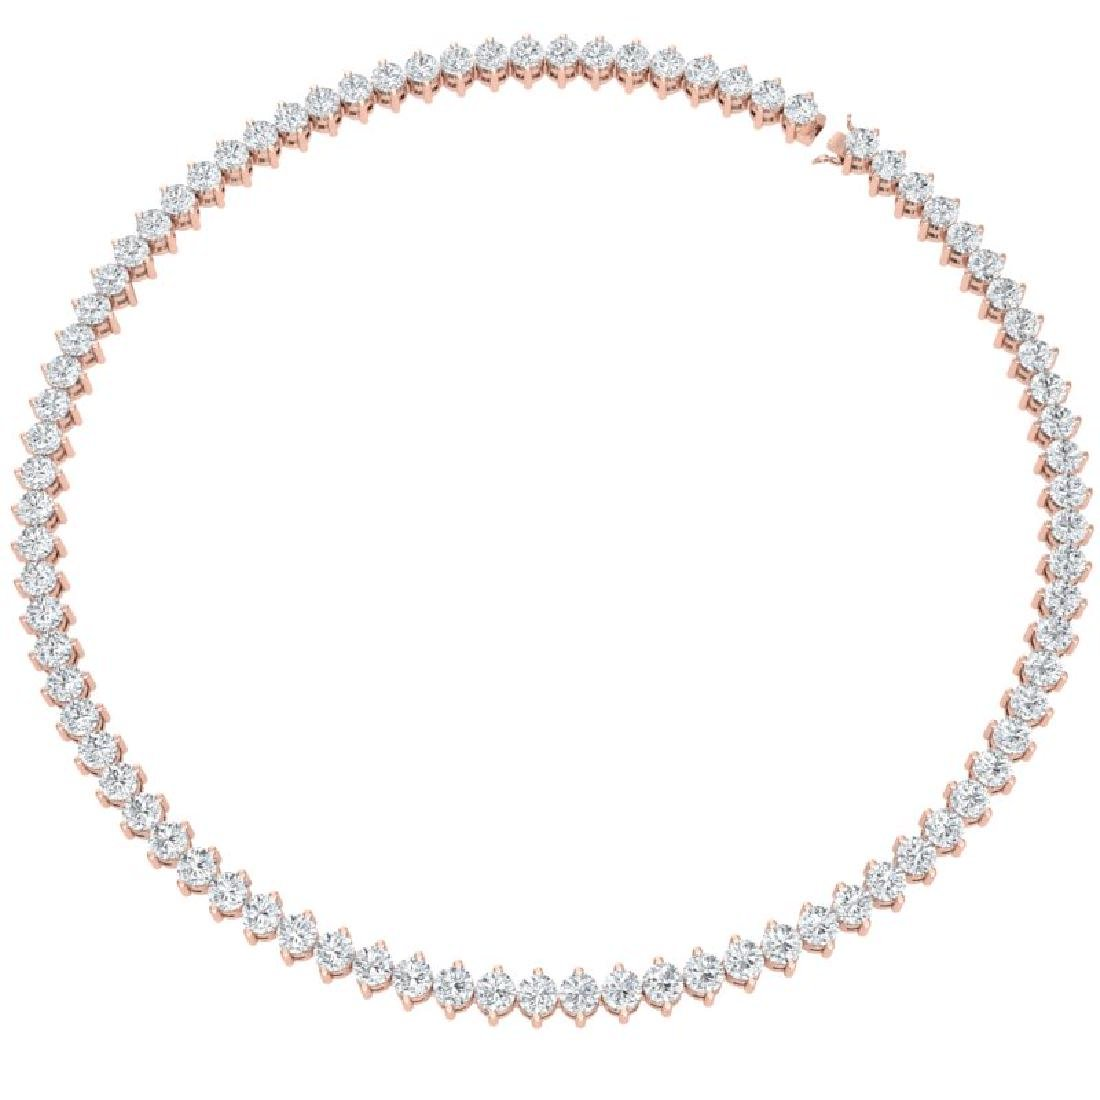 30 CTW Certified VS/SI Diamond Necklace 18K Rose Gold - 3